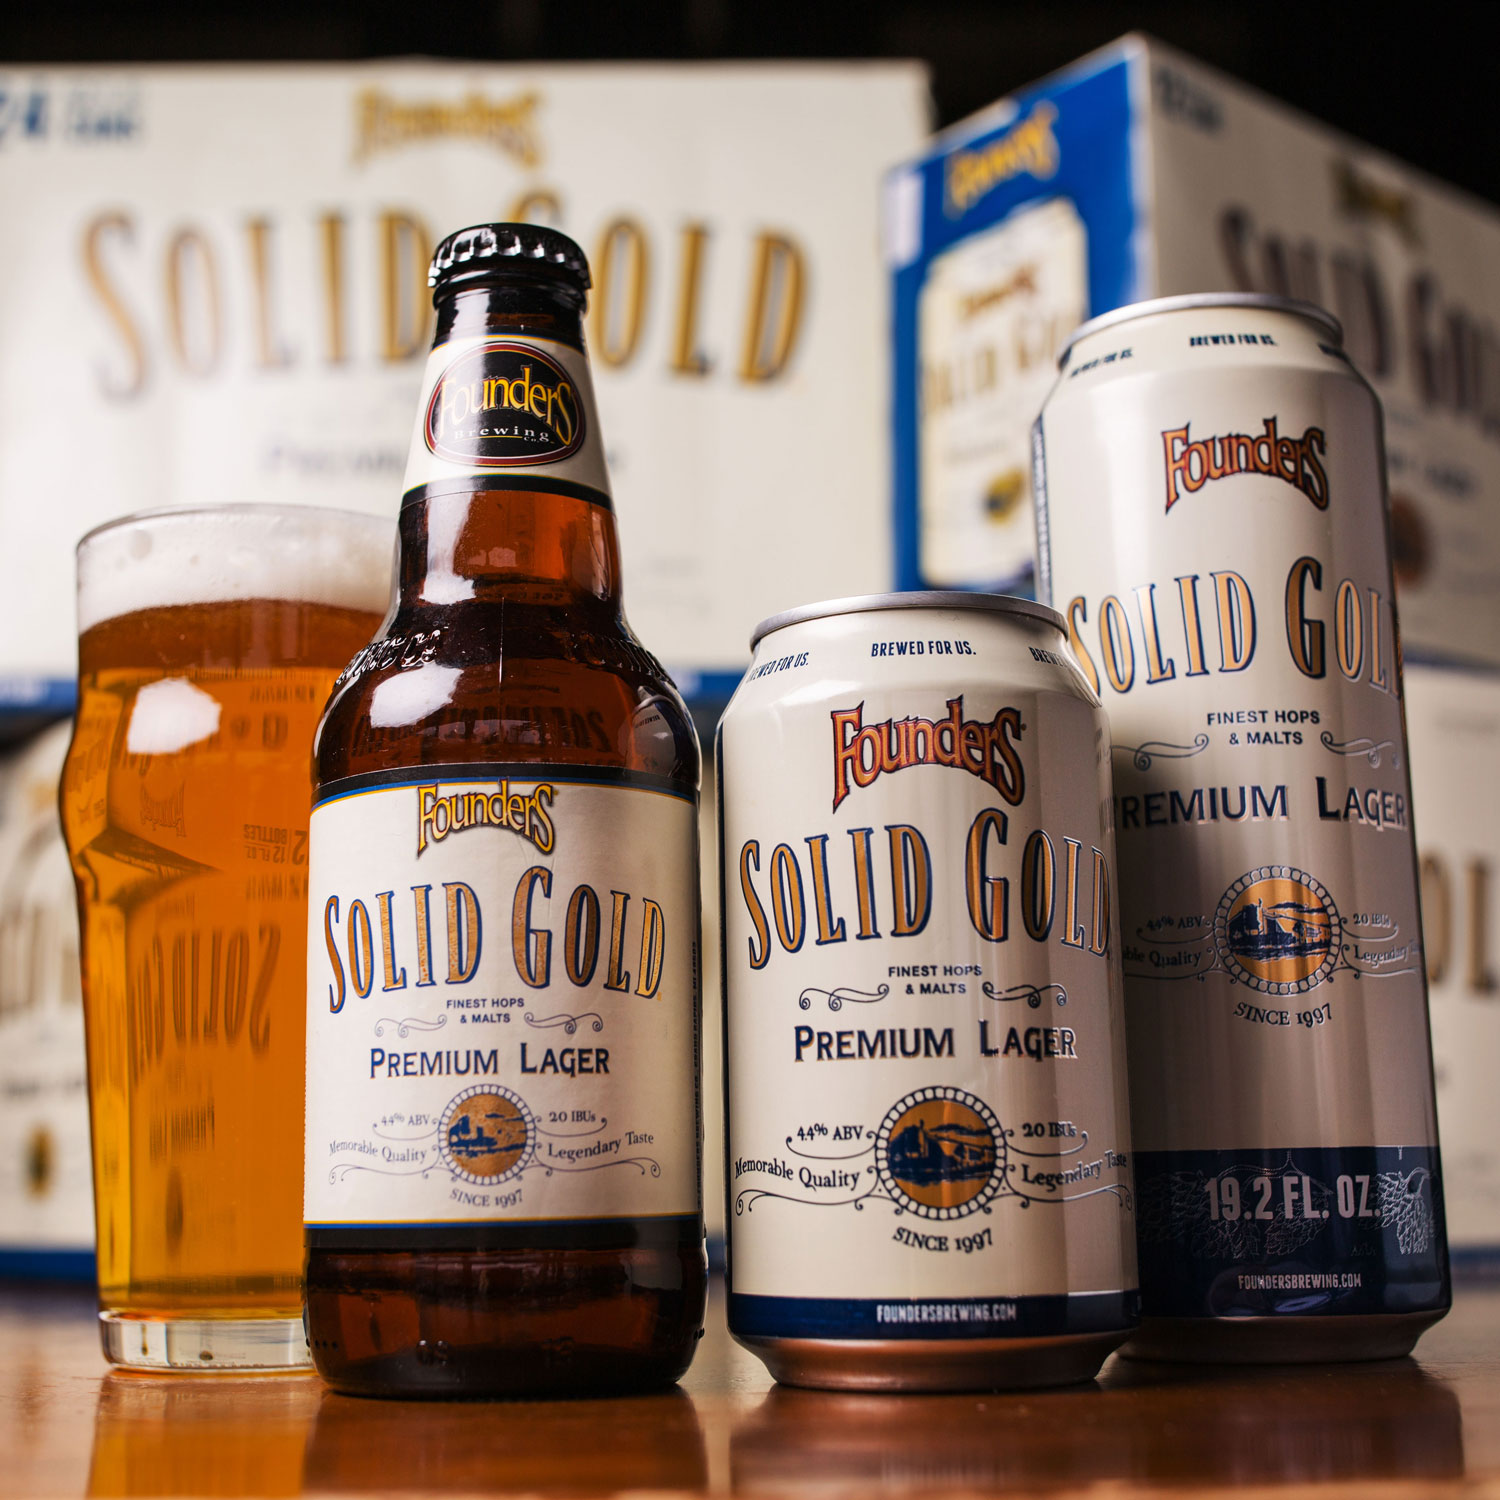 Glass, bottle, cans of Founders Solid Gold